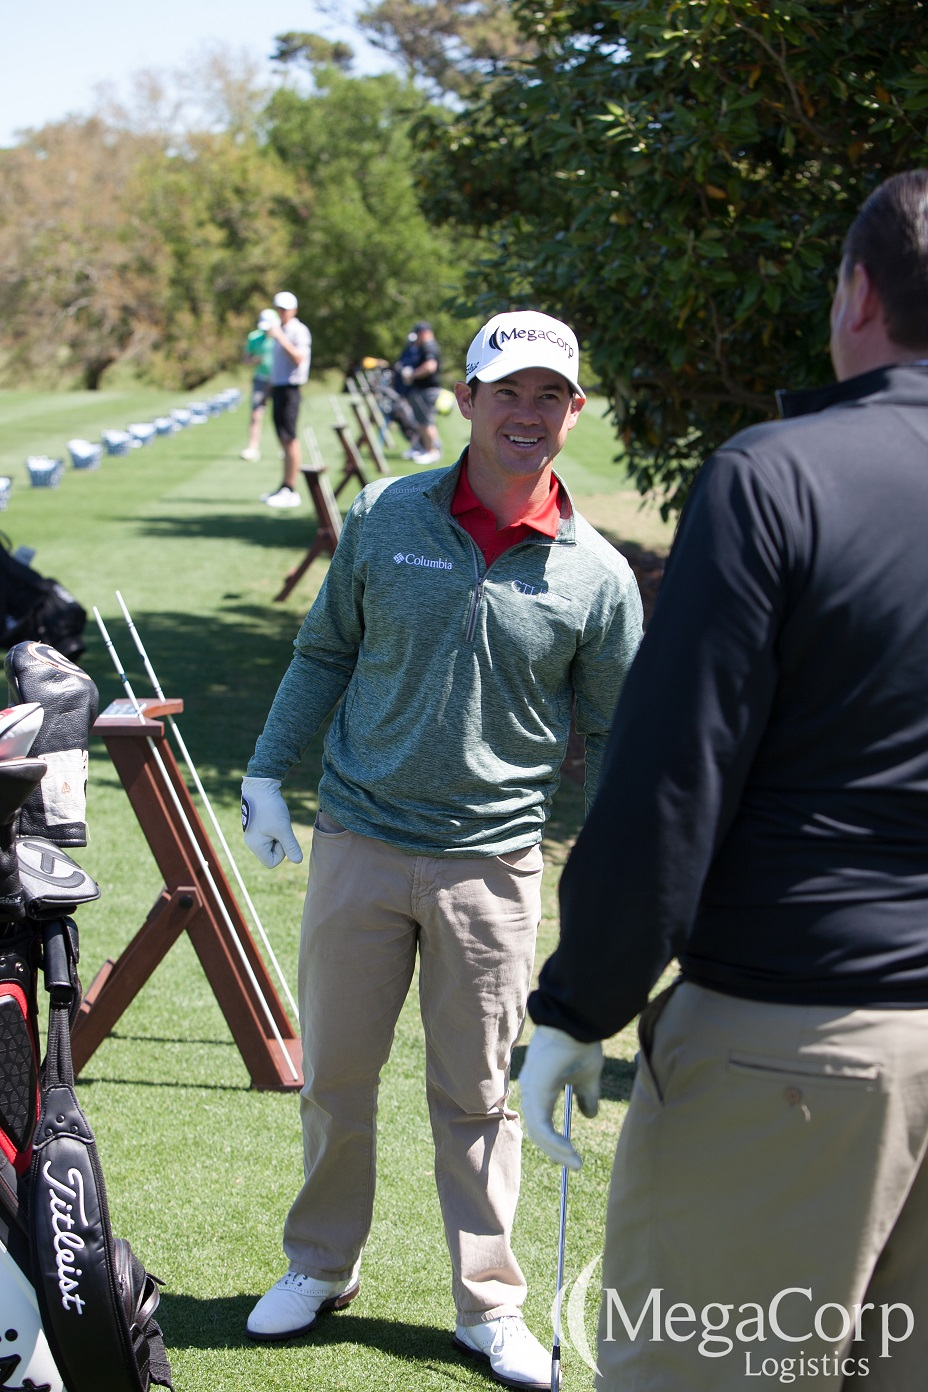 Brian Harman smiling and holding a golf club while talking to another man on the golf course.